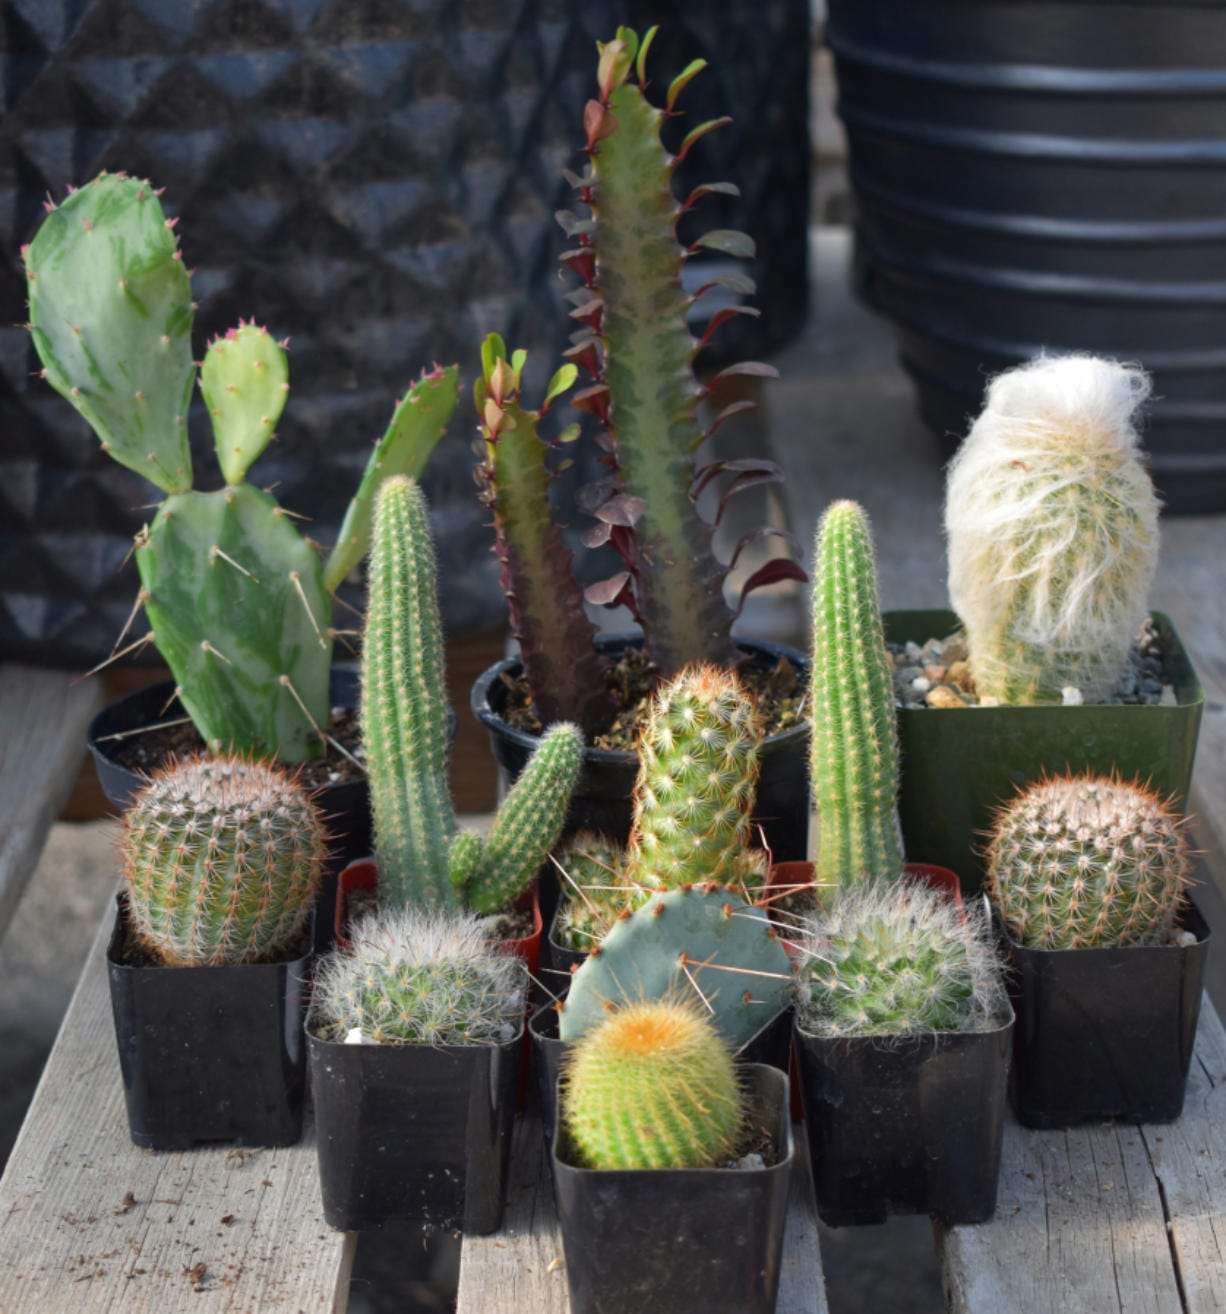 Indoor plant expert Karlene Kitchel of Tsugawa Nursery says you can induce your cactuses to bloom if you place them on a south-facing windowsill and water them every six to eight weeks.